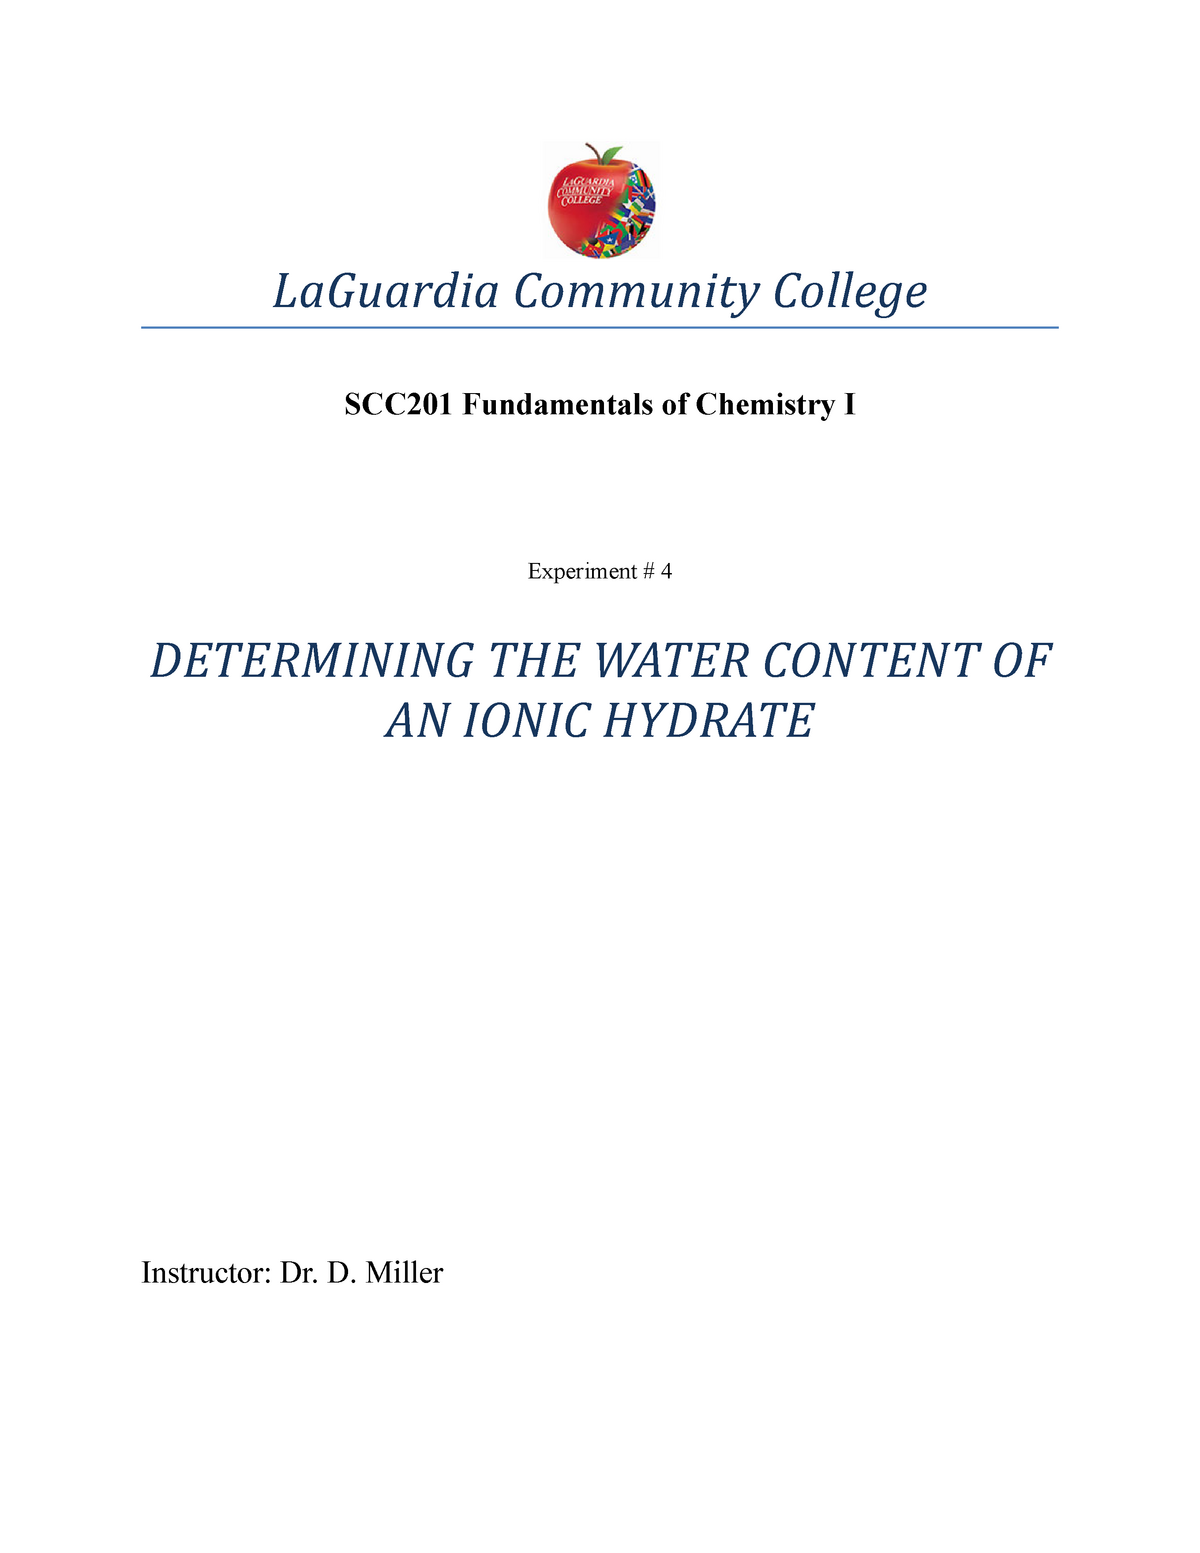 YOGI-ionichydrate - Determining the Empirical Formula of a Hydrate D